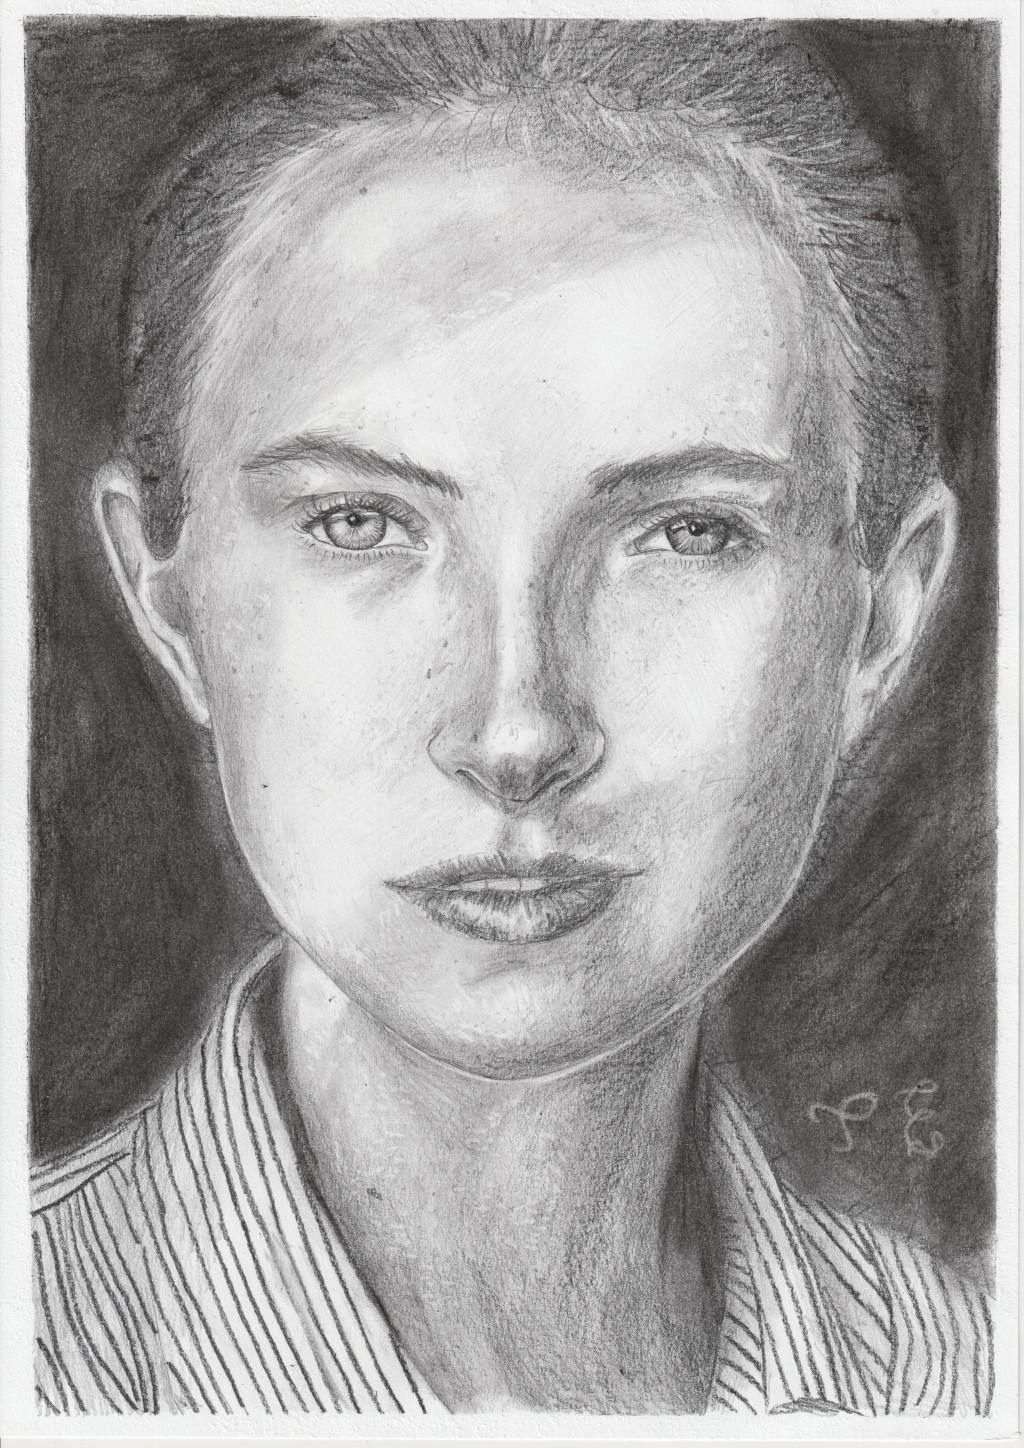 Pencil portrait on dark background